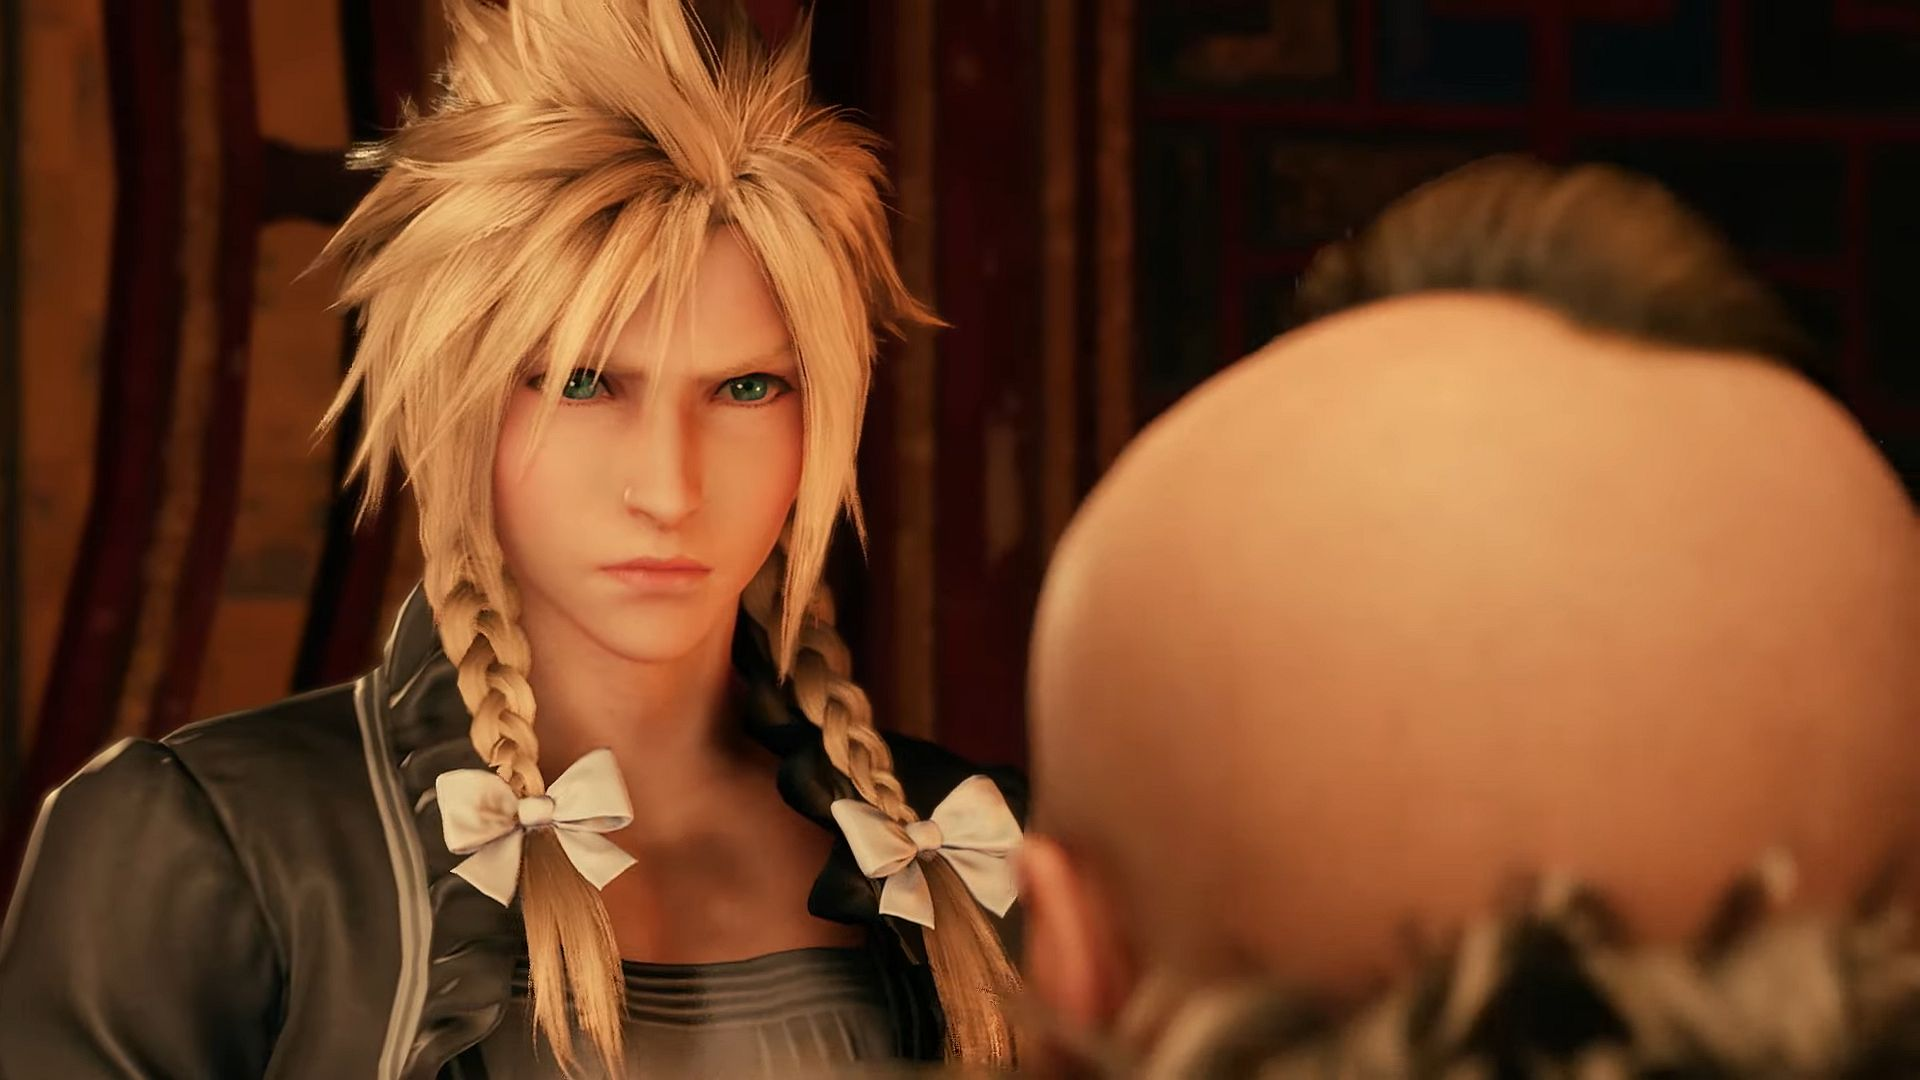 The beautiful Cloud Strife cross dressing during the Don mission